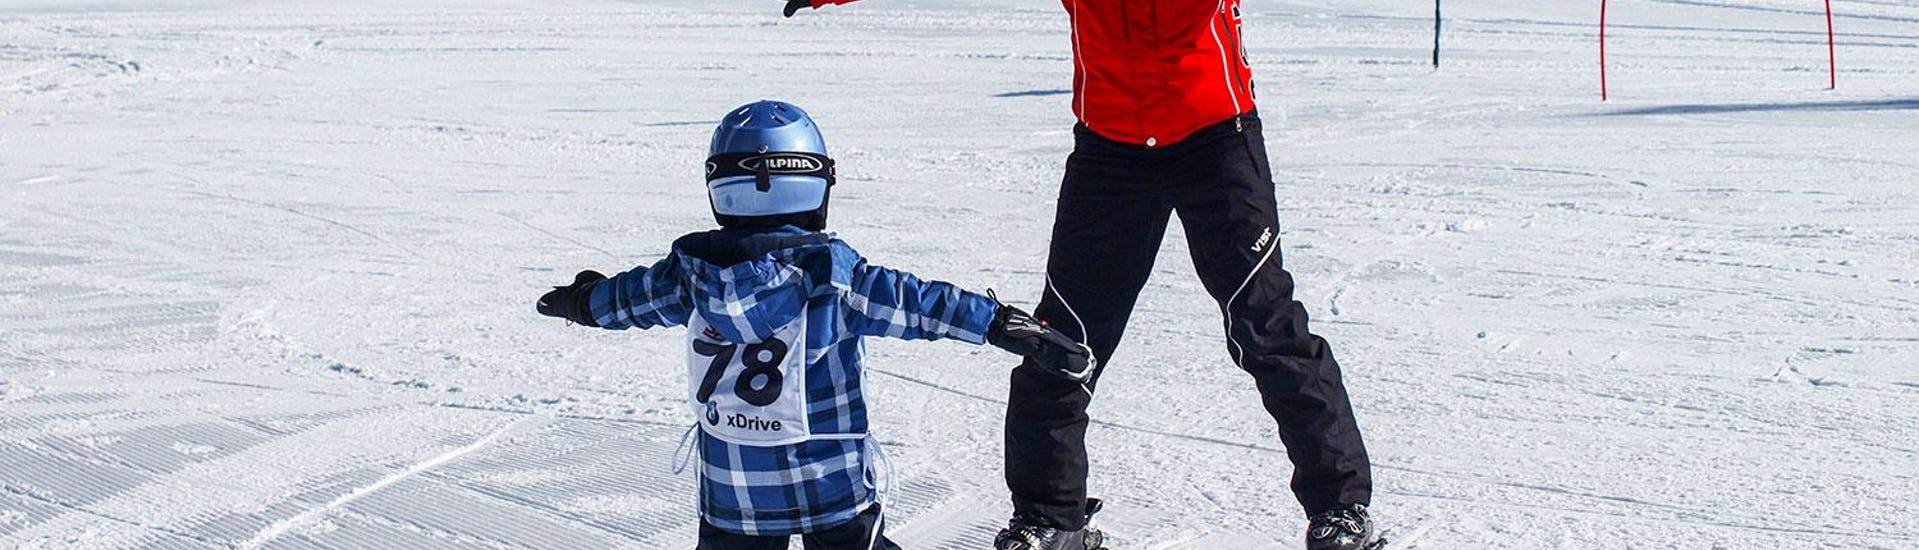 Skiinstructor skis backwards and teaches the little kid a snow plough